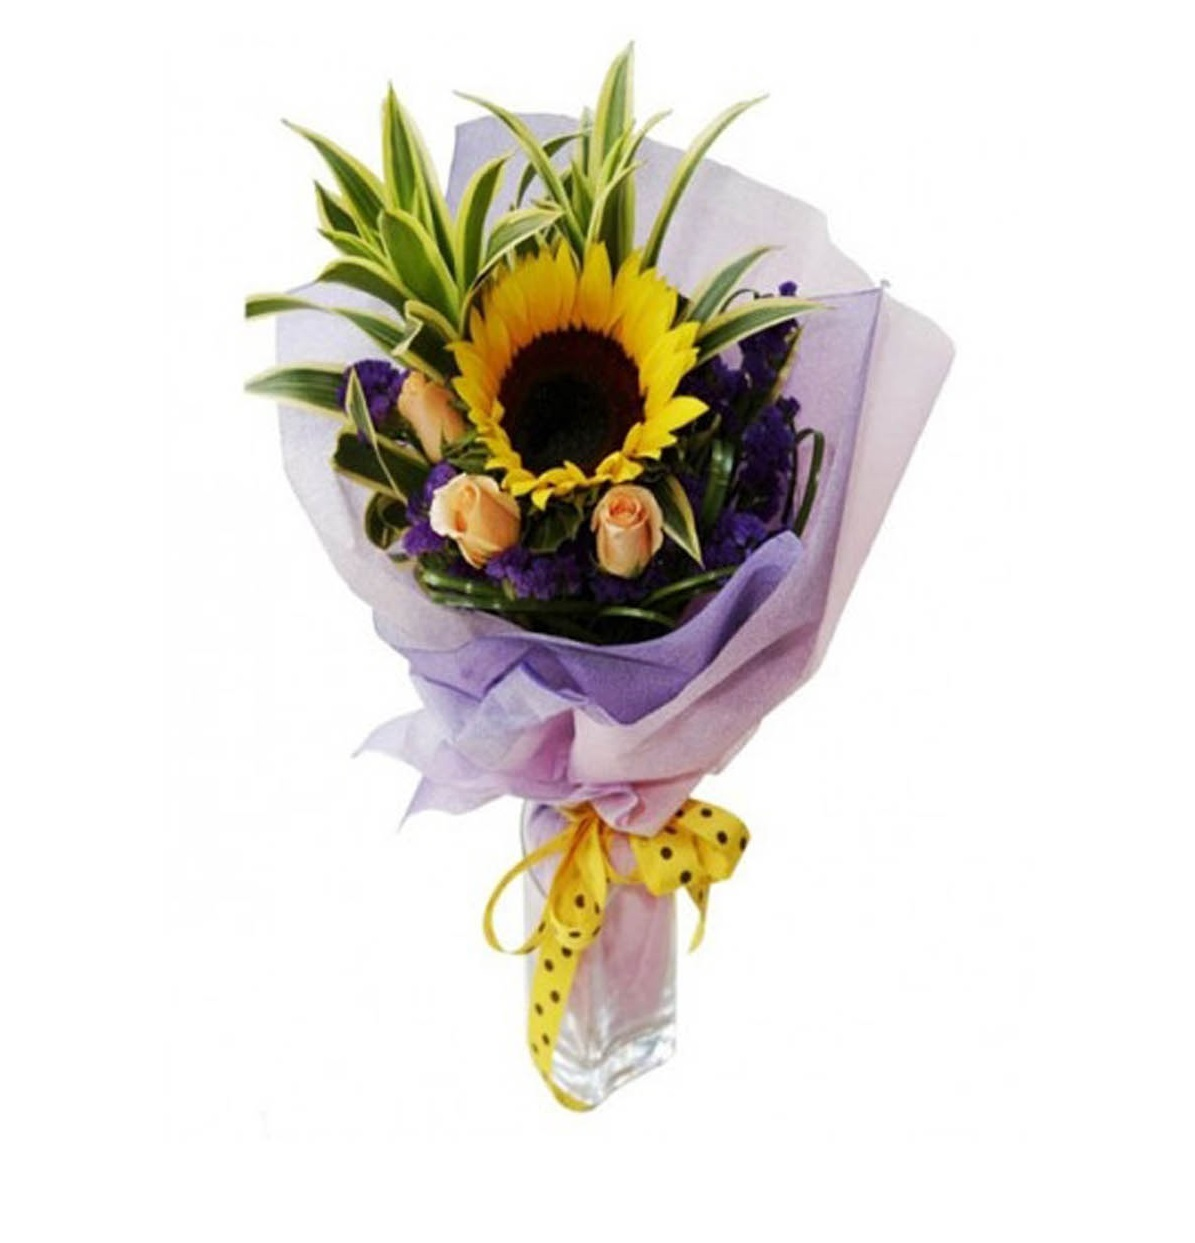 Metro Manila flower shops - Dangwa Flower Shop